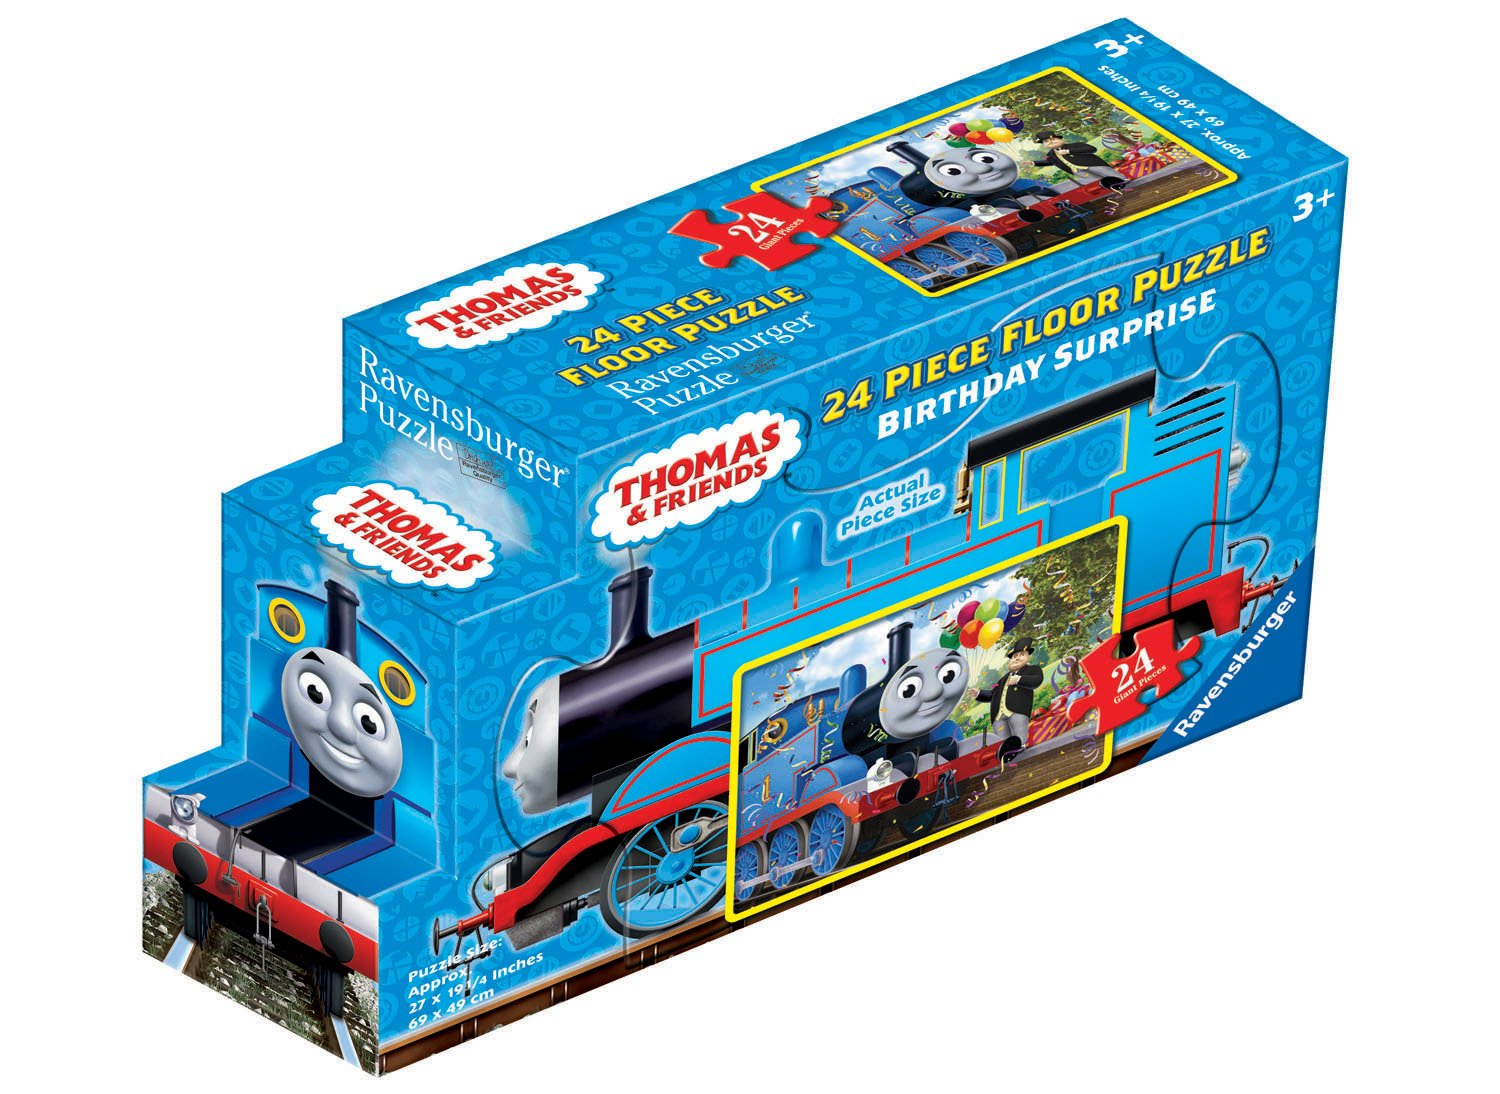 thomas and friends birthday surprise 24 piece floor puzzle   new  free shipping